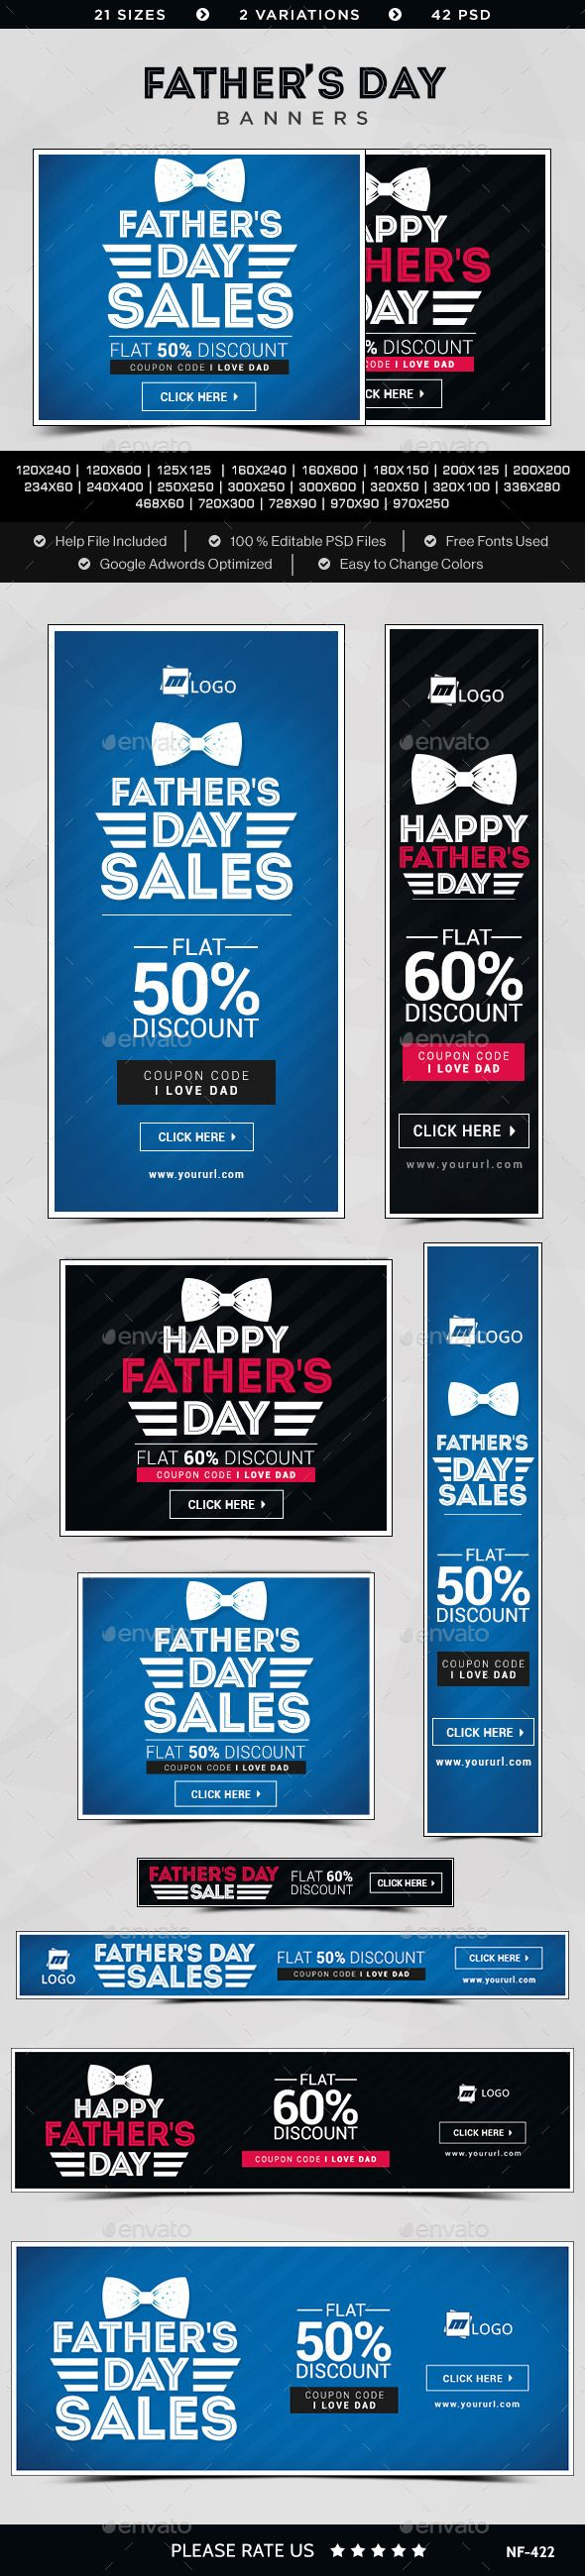 Father's Day Sale Banners Template #design Download: http://graphicriver.net/item/fathers-day-sale-banners/11741795?ref=ksioks